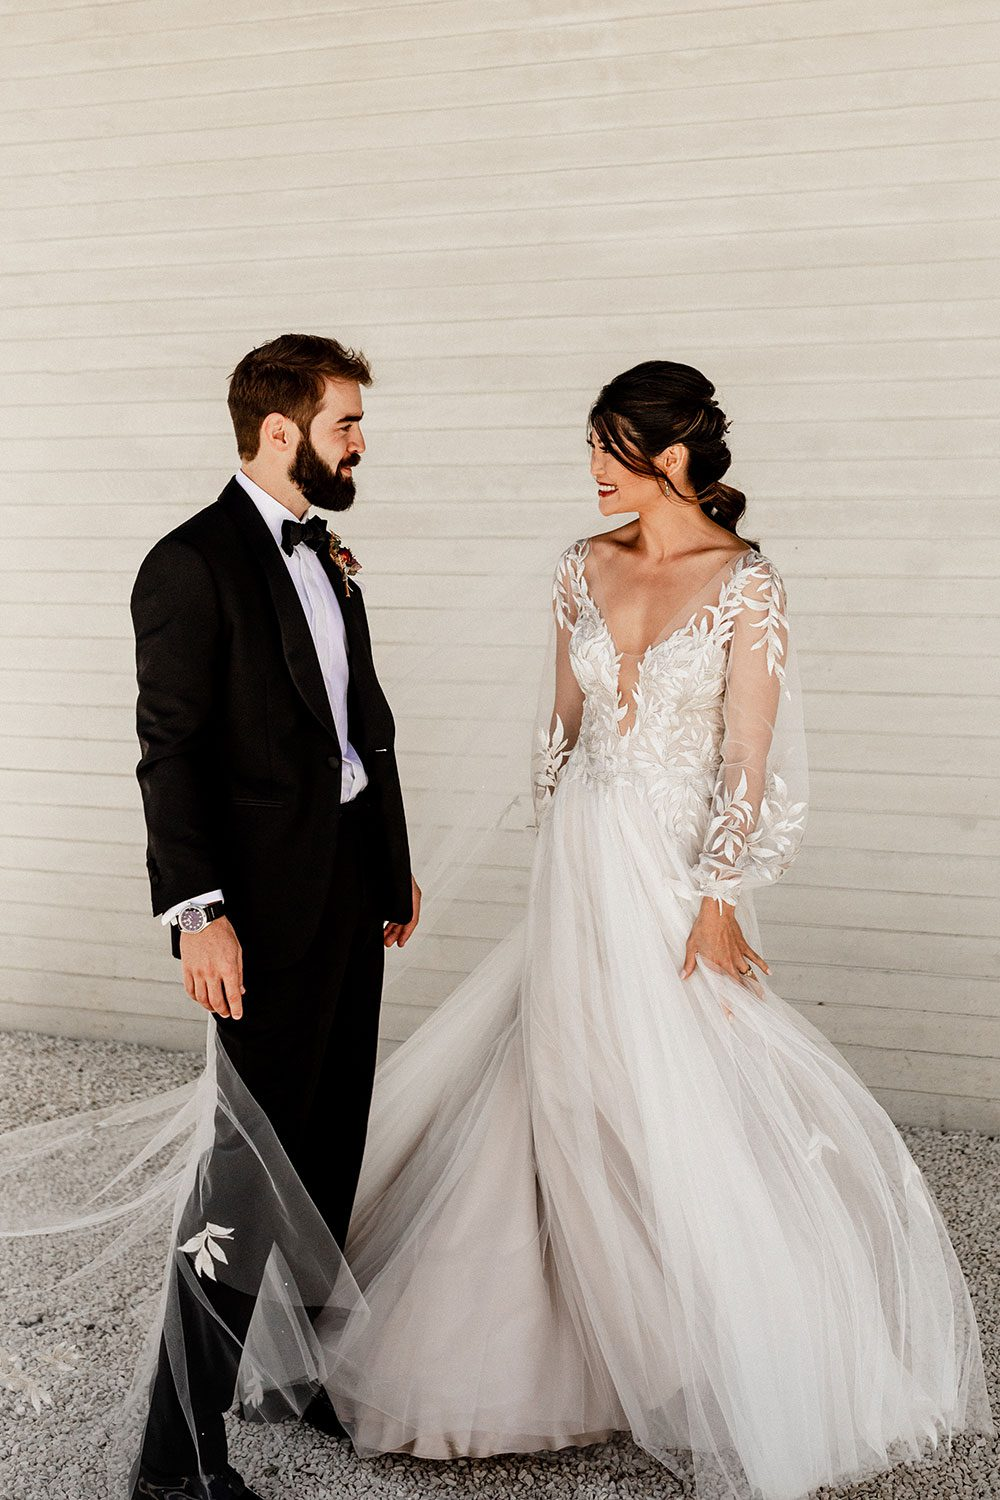 Bride wearing bespoke designer wedding dress by Vinka Bridal Boutique NZ, adorned with delicate applique lace and puffed sleeves - facing groom near wall